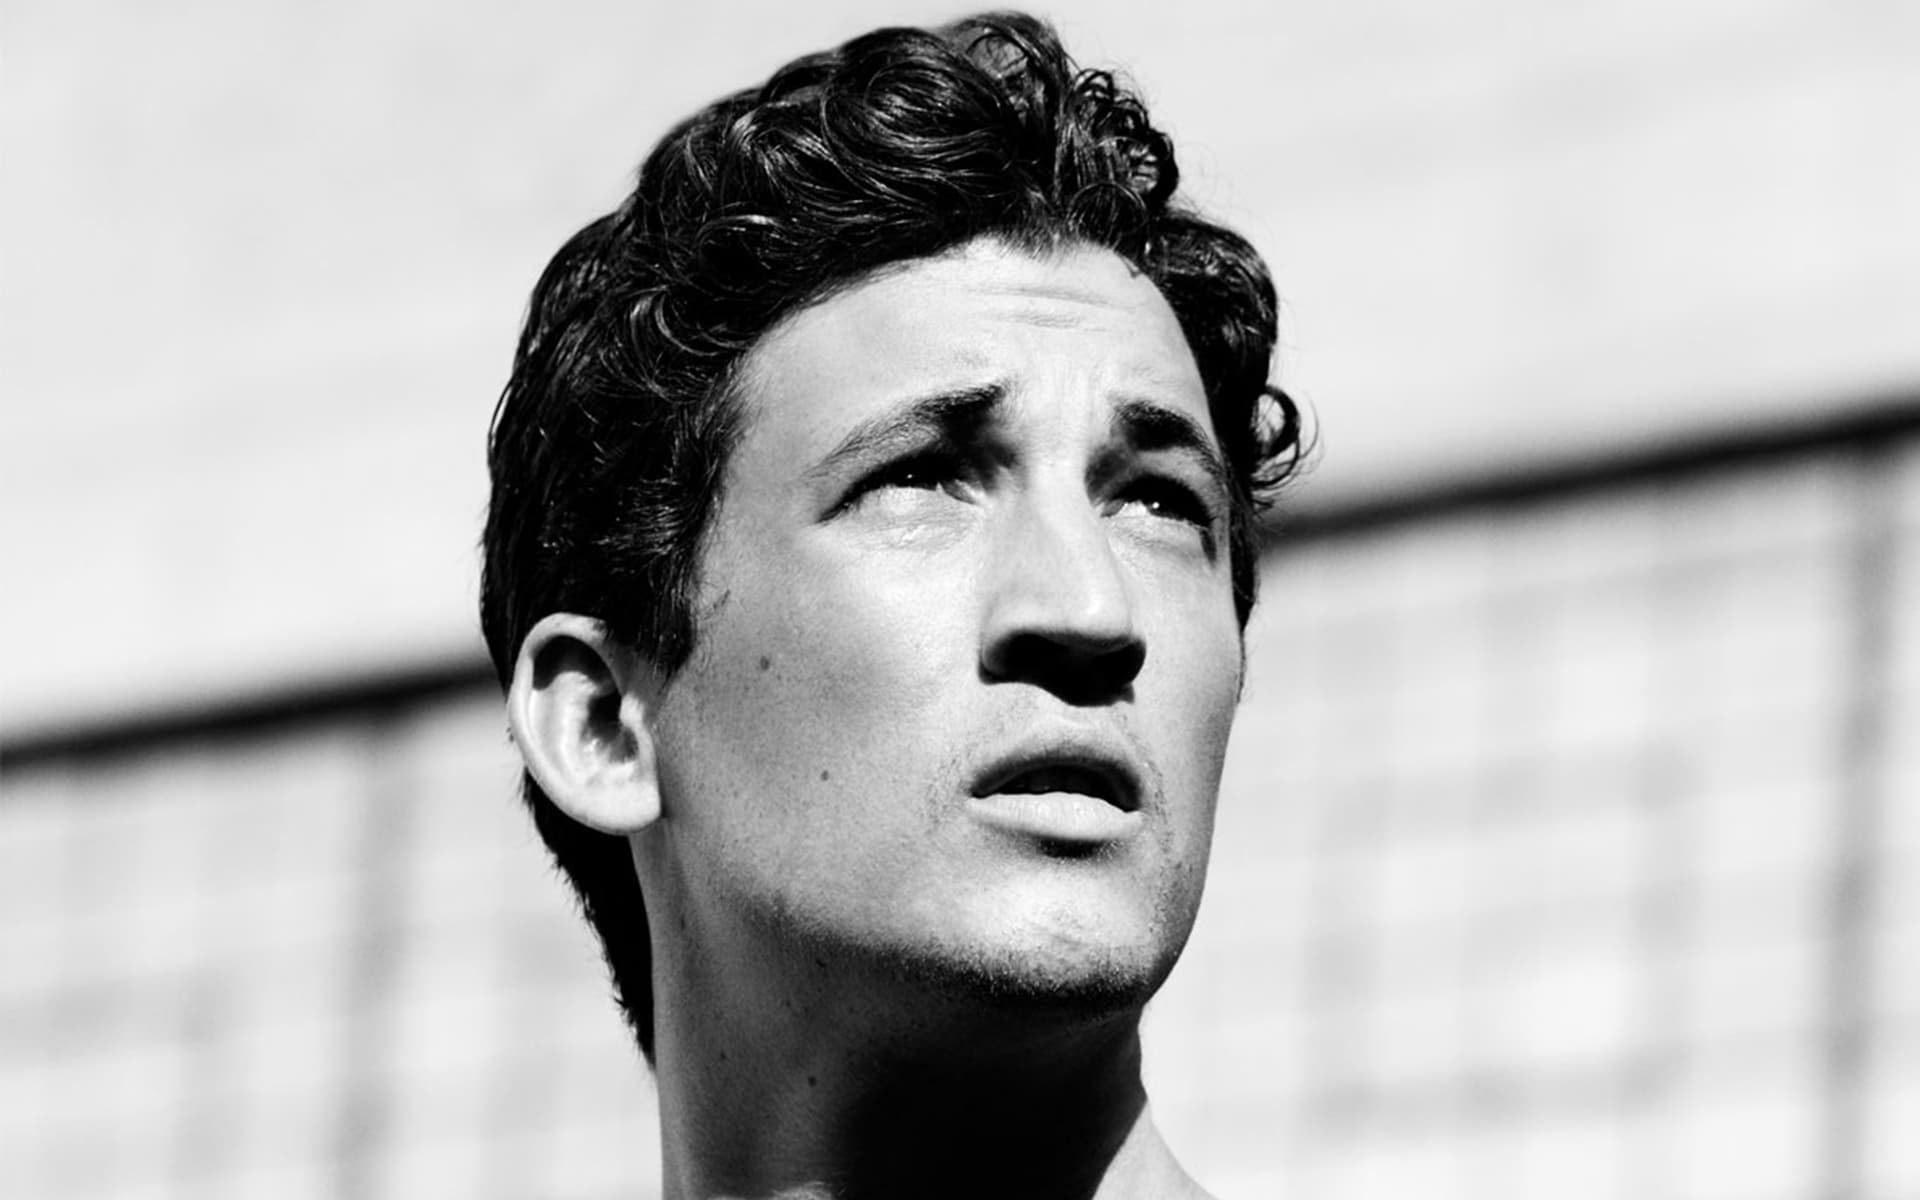 monochrome miles teller face wallpaper 55695